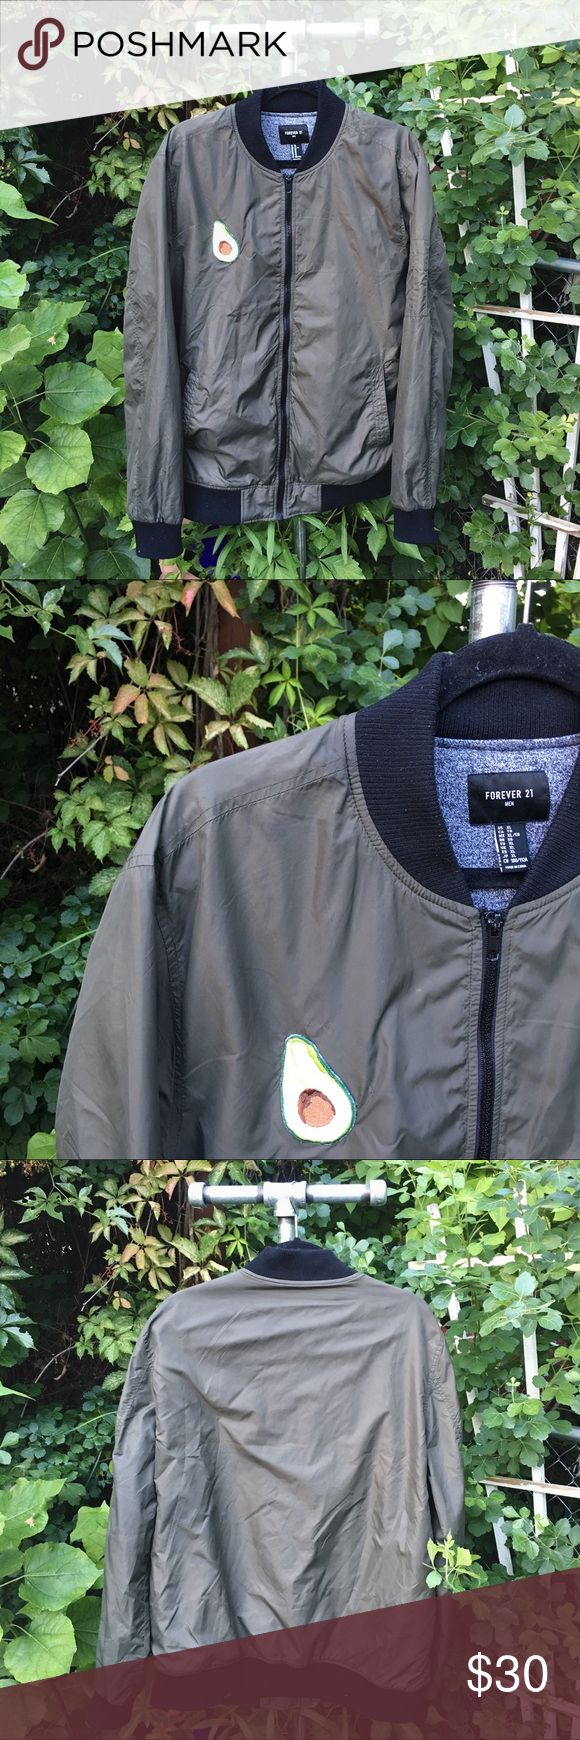 Forever 21 Avocado 🥑 Bomber (Men's XL) Men's Bomber Jacket (Forever 21) with custom Avocado patch on right side. Patch is ironed-on and sewn-on. Size XL and color is green. Great condition! Super cool trendy jacket for any occasion. One of a kind, so avocadon't miss out on this jacket!!! 🥑🥑🥑 Forever 21 Jackets & Coats Bomber & Varsity